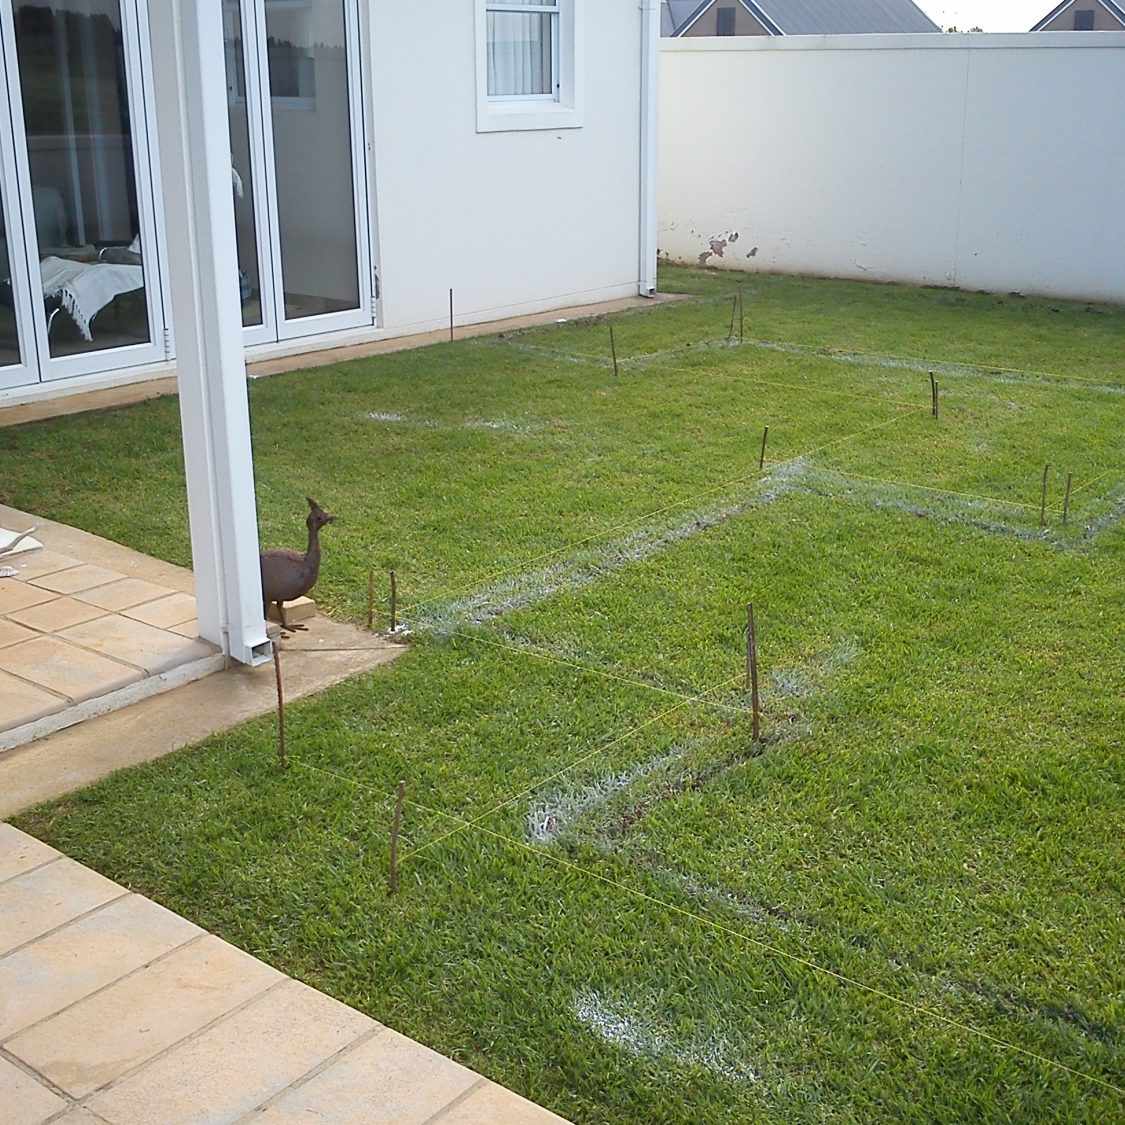 Contemporary-small-garden-2: Bespoke contemporary designed private garden in Garlington Estate in Hilton KZN, incorporating, Spaced flagstone paving with gravel and cobble edging.